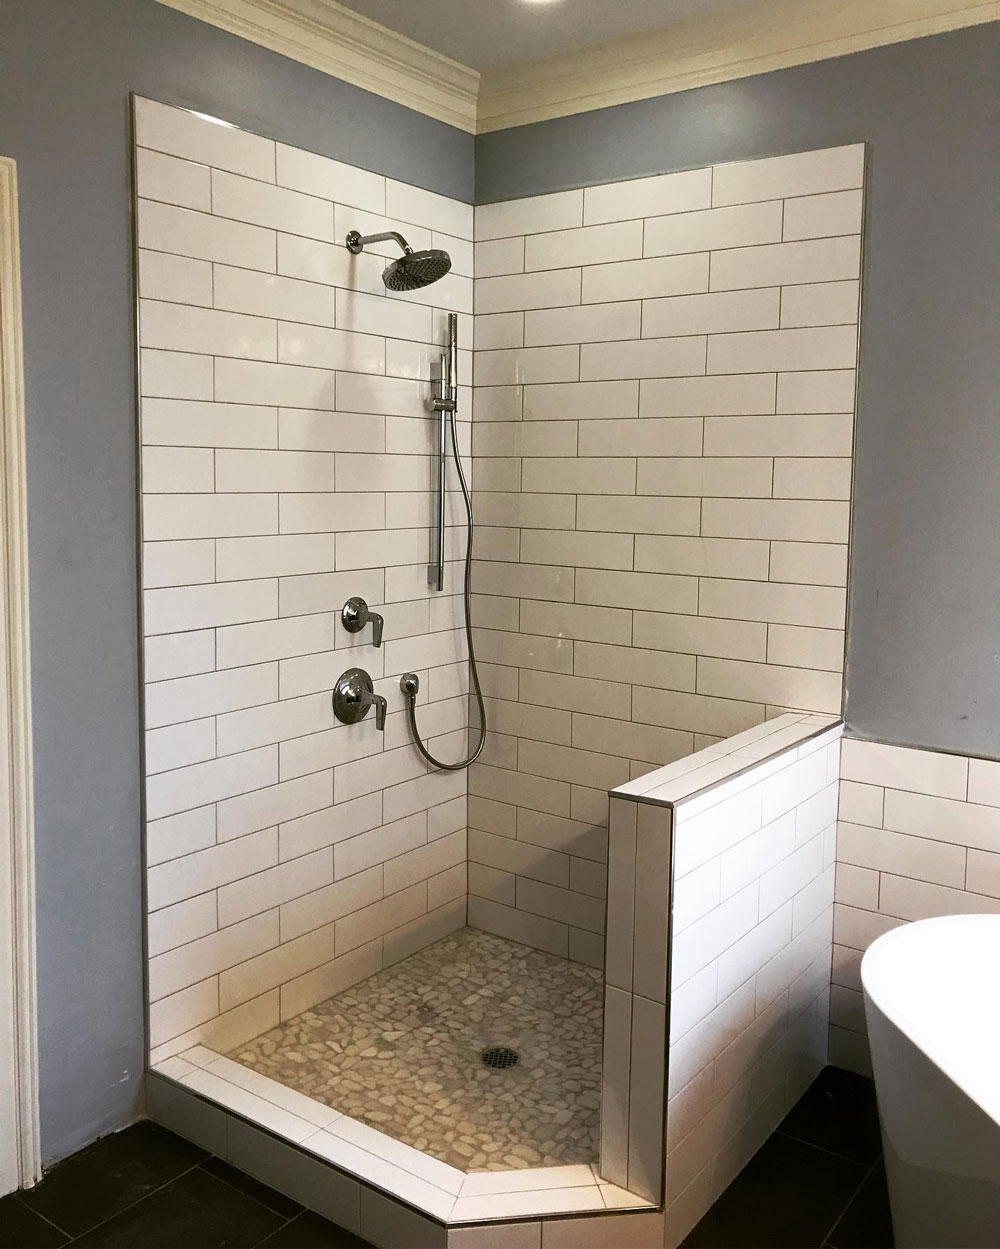 Bathroom Project - Shower with white tile